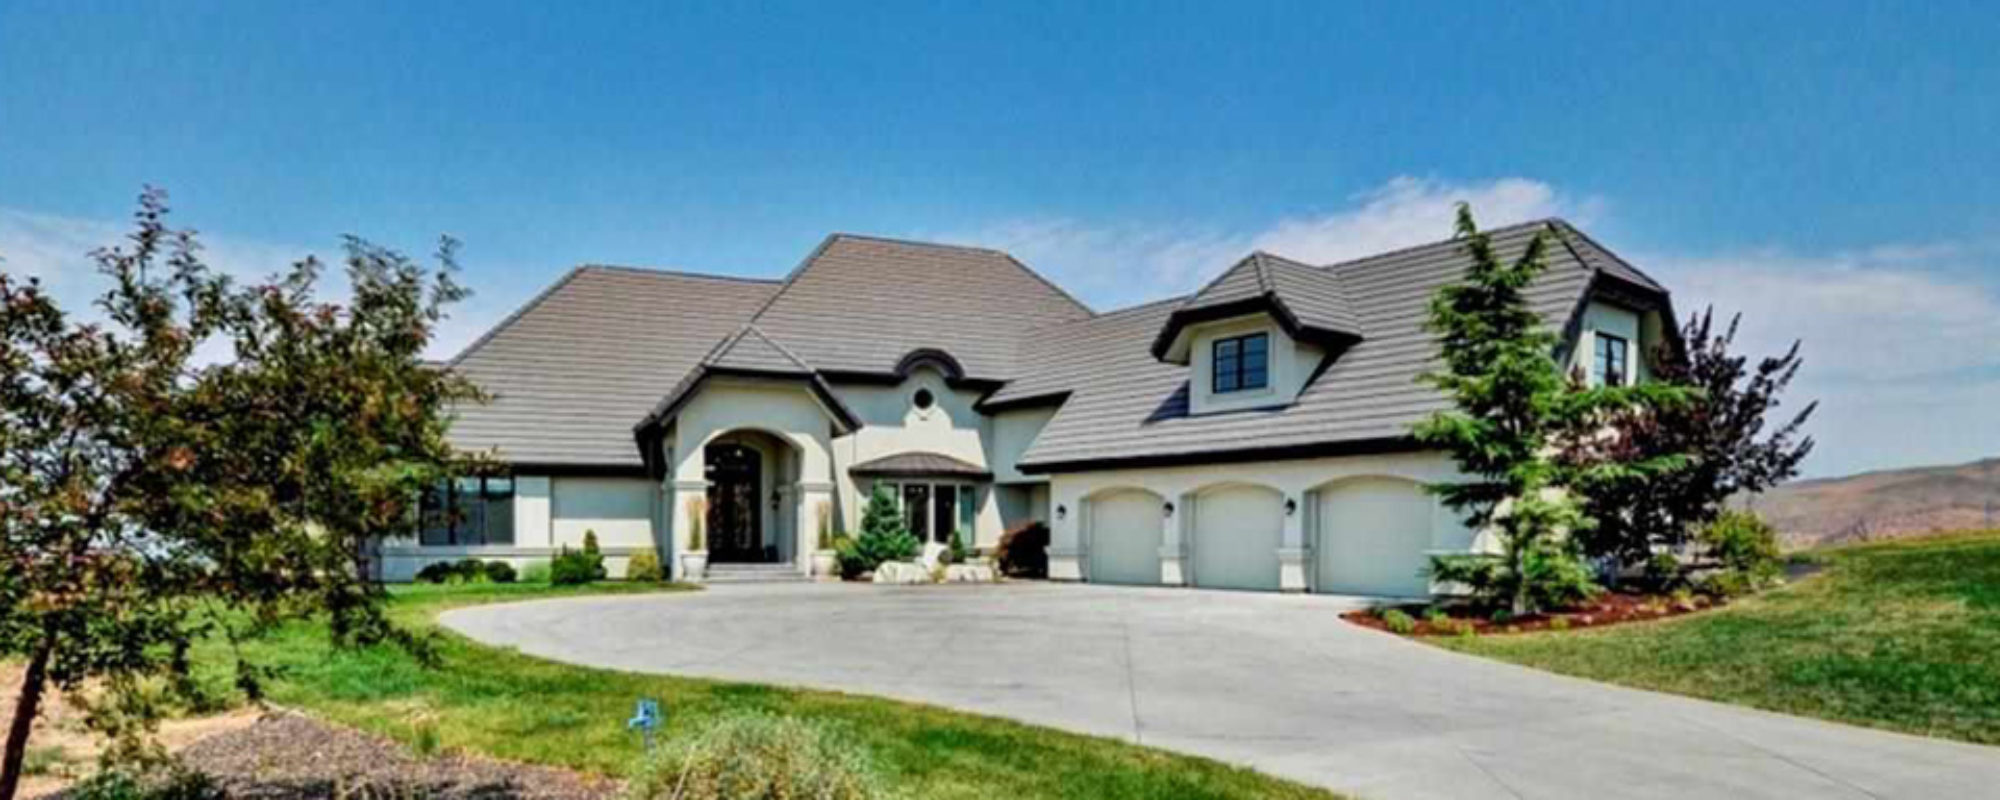 Buy Your Boise, Idaho Home Today!